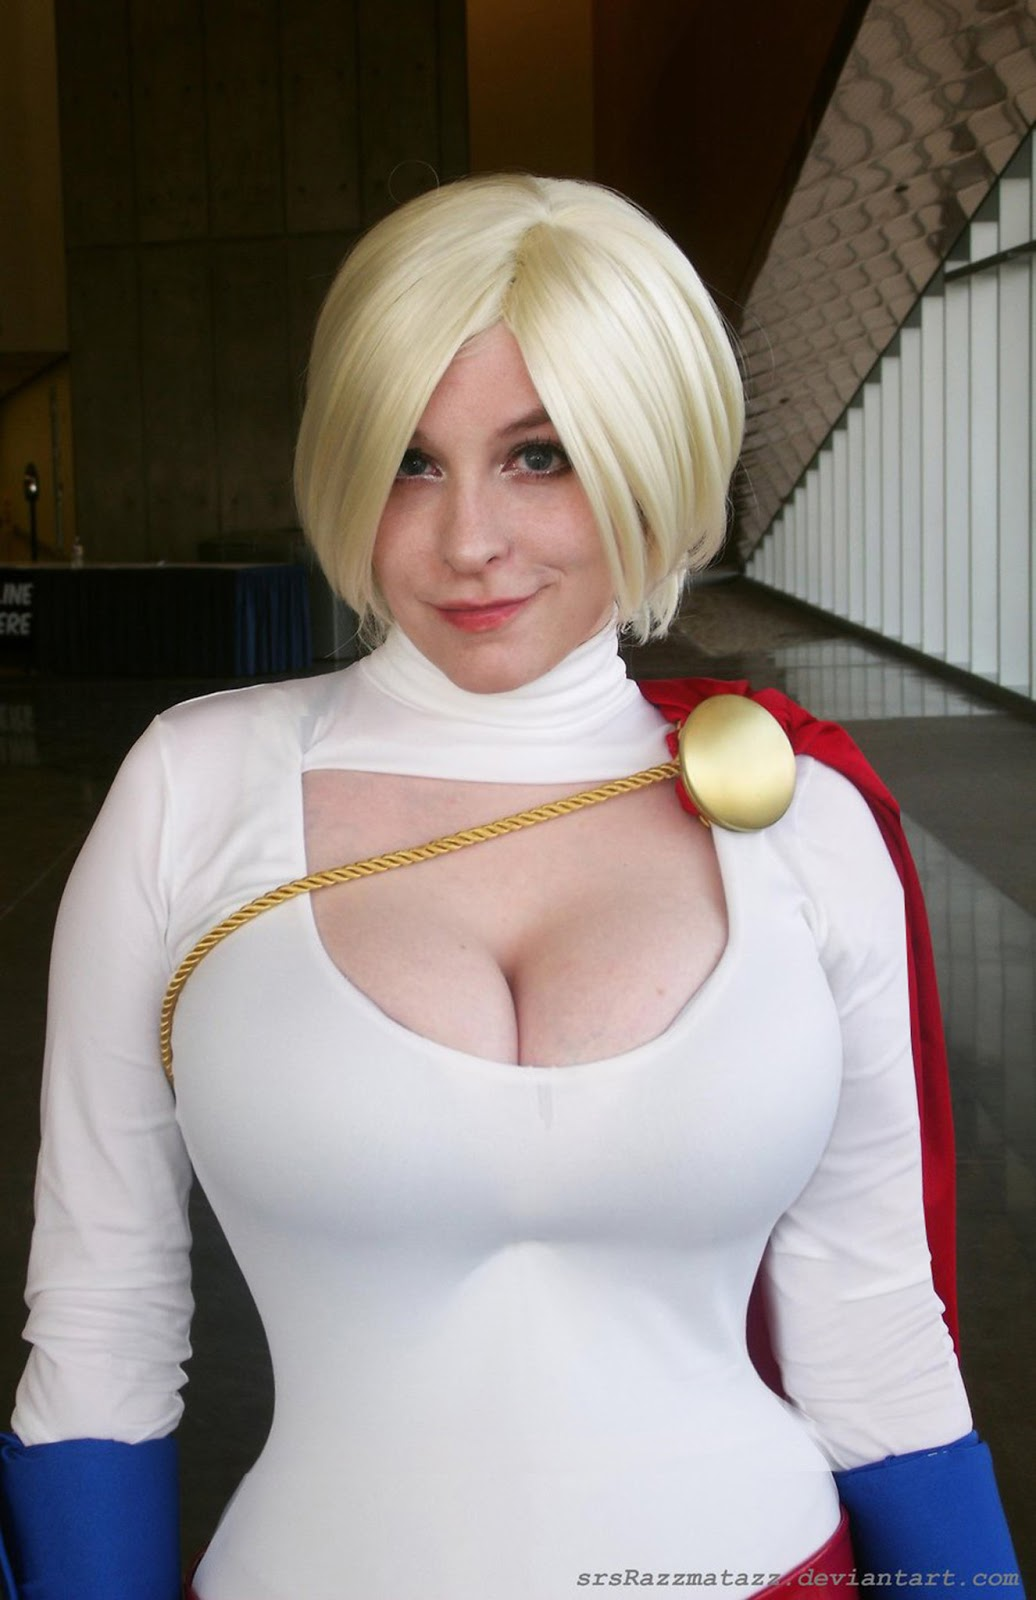 Big tits sexy supergirl costume